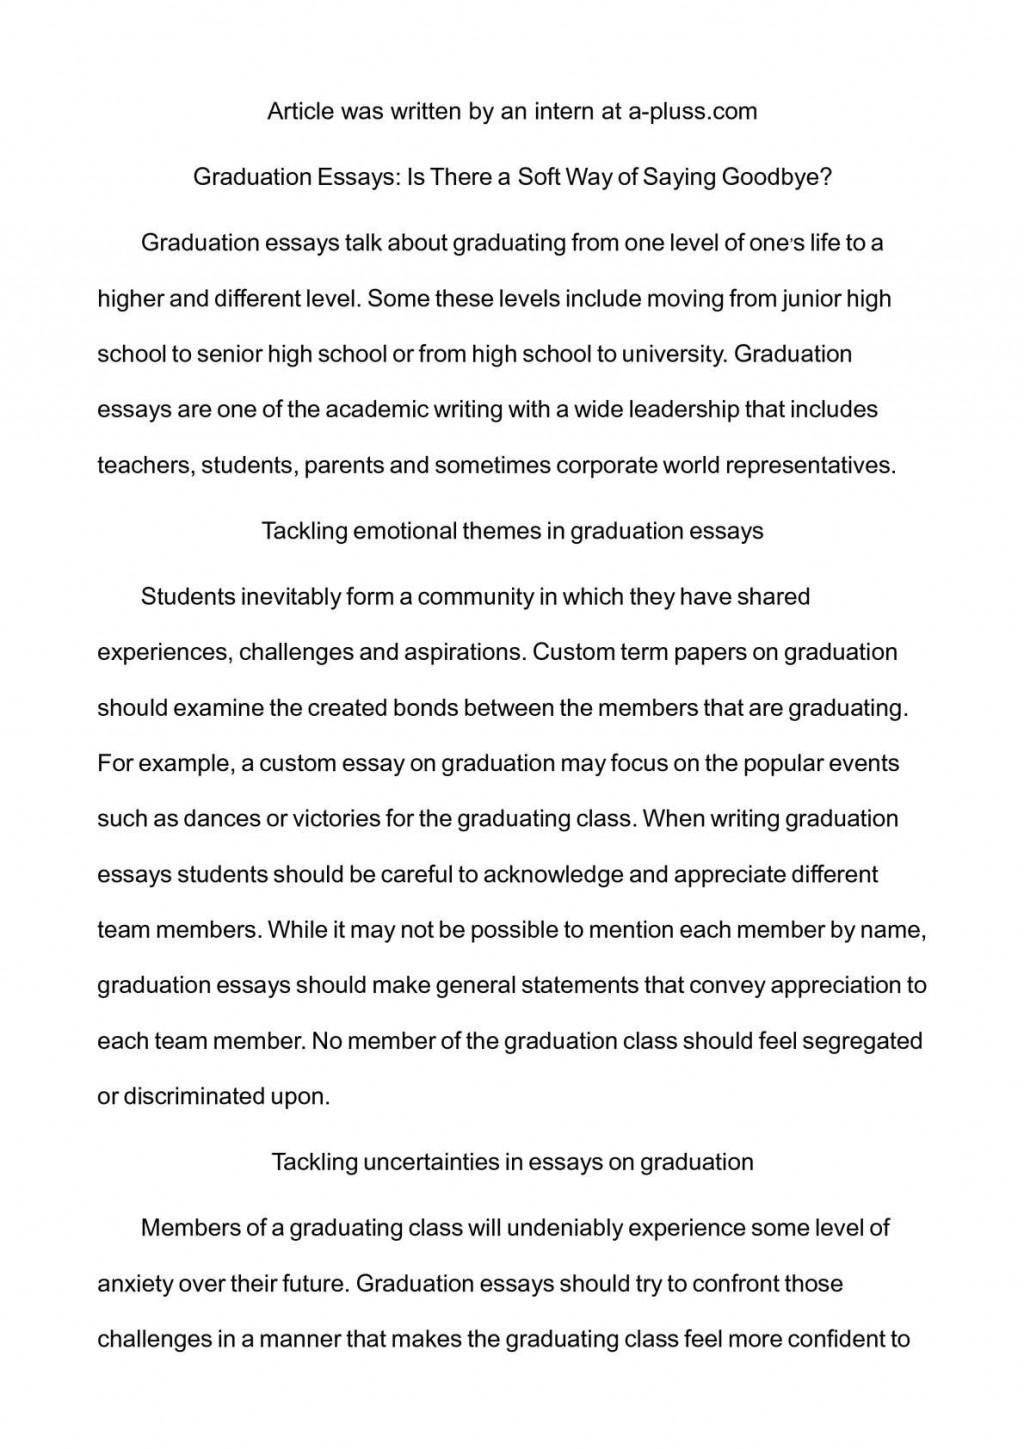 004 Essay Example P1 Formidable Truth Conclusion Alone Triumphs In English Titles Large